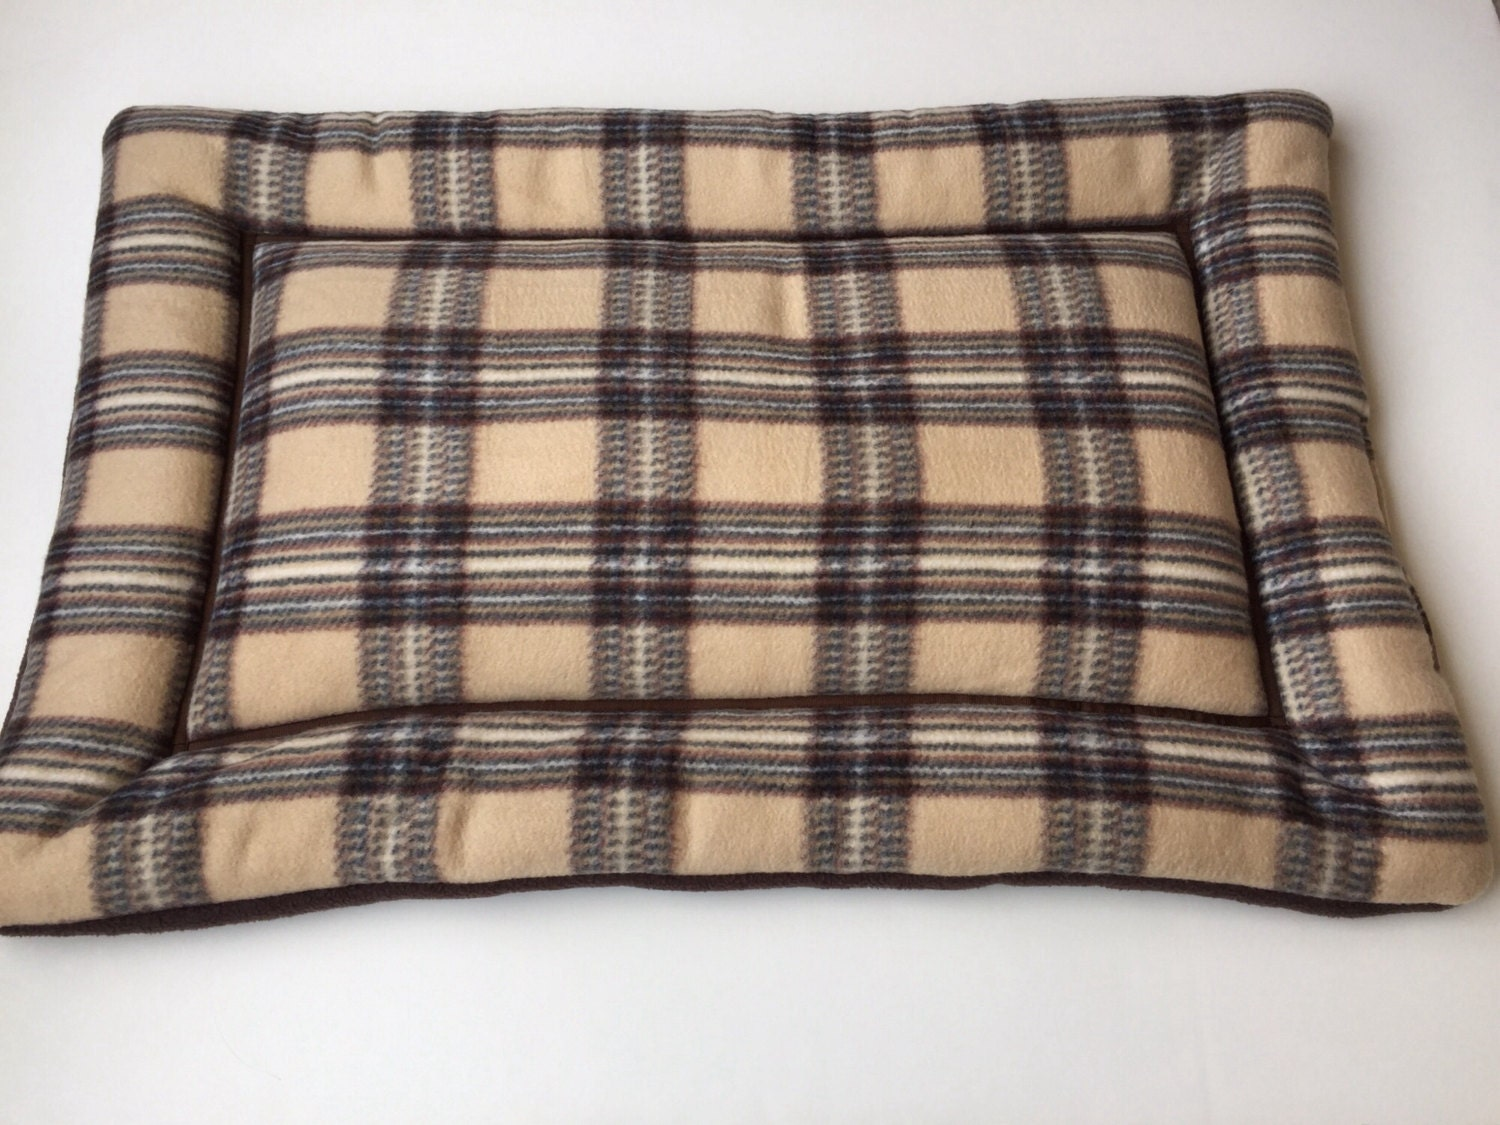 Fleece Dog Bed Dog Crate Pads Plaid Fabric Puppy Pad Large